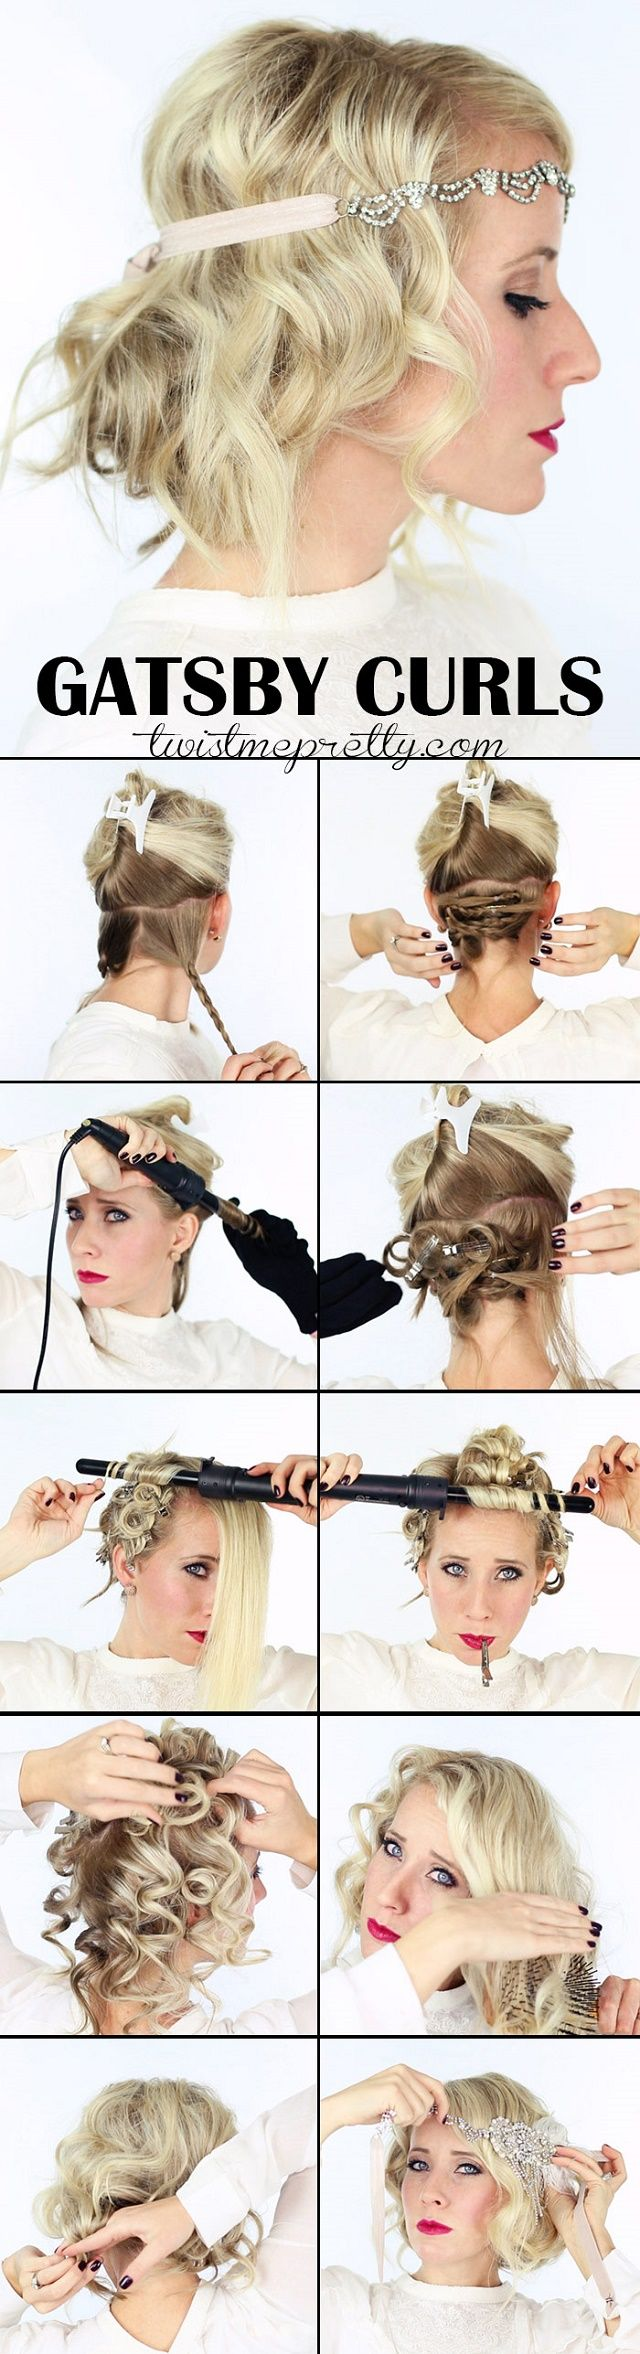 the great gatsby inspired hairstyle tutorial | hair & beauty